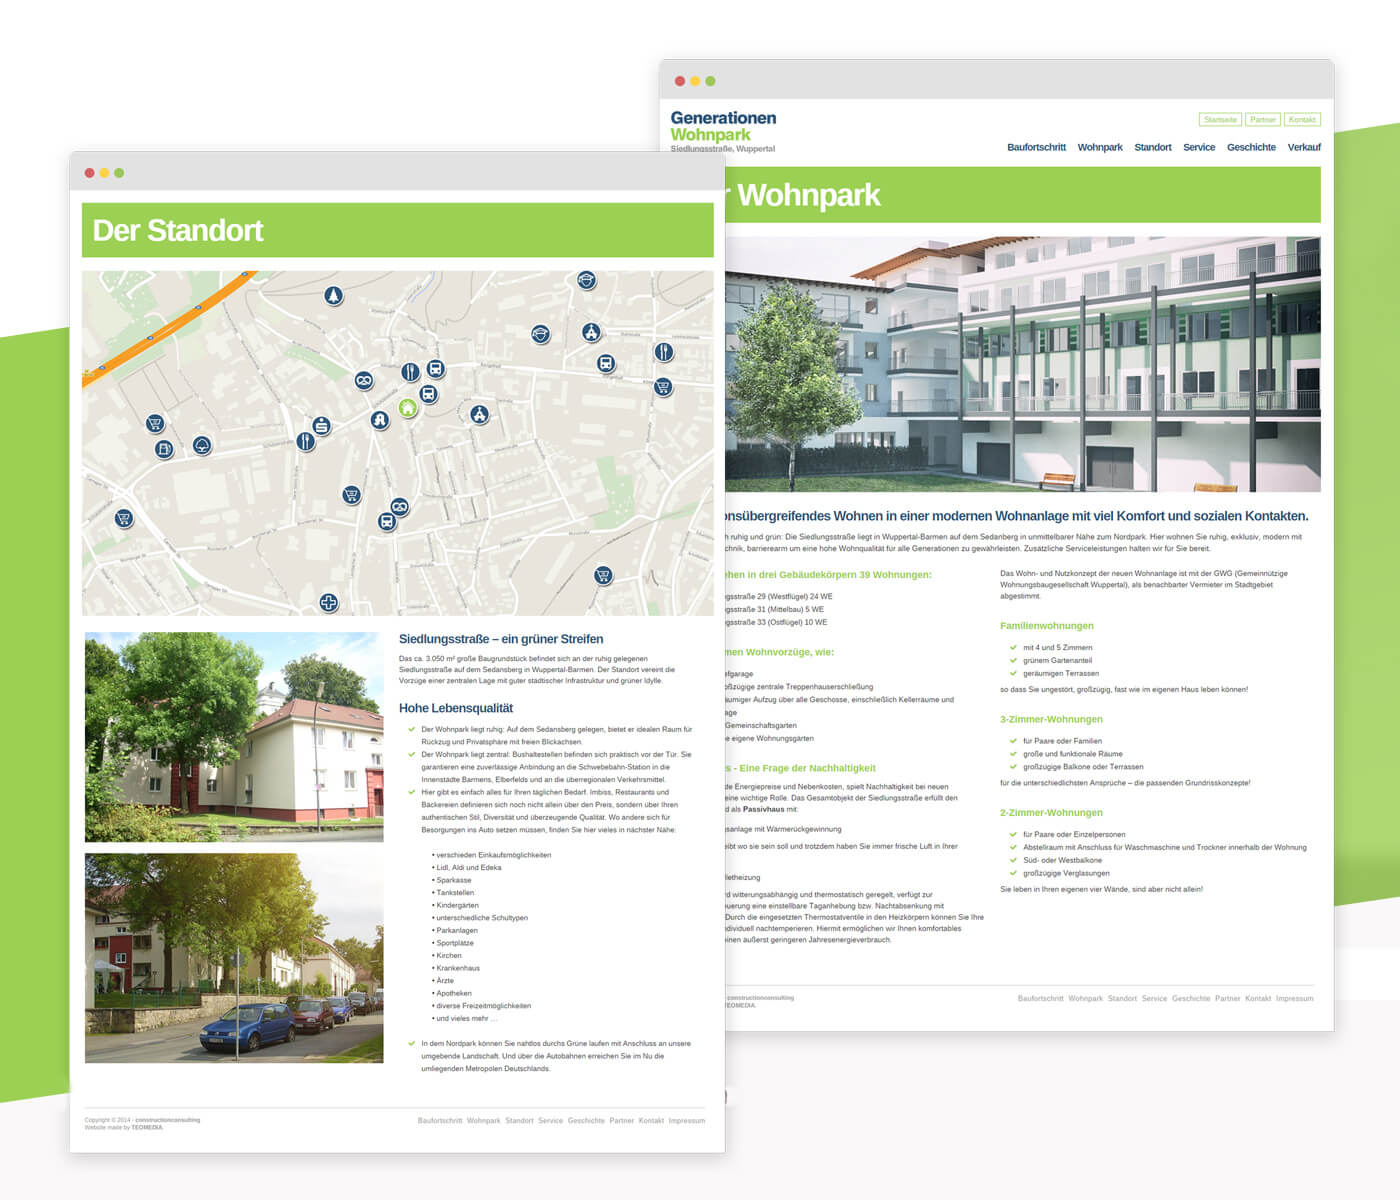 Generationen Wohnpark - ConstructionConsulting